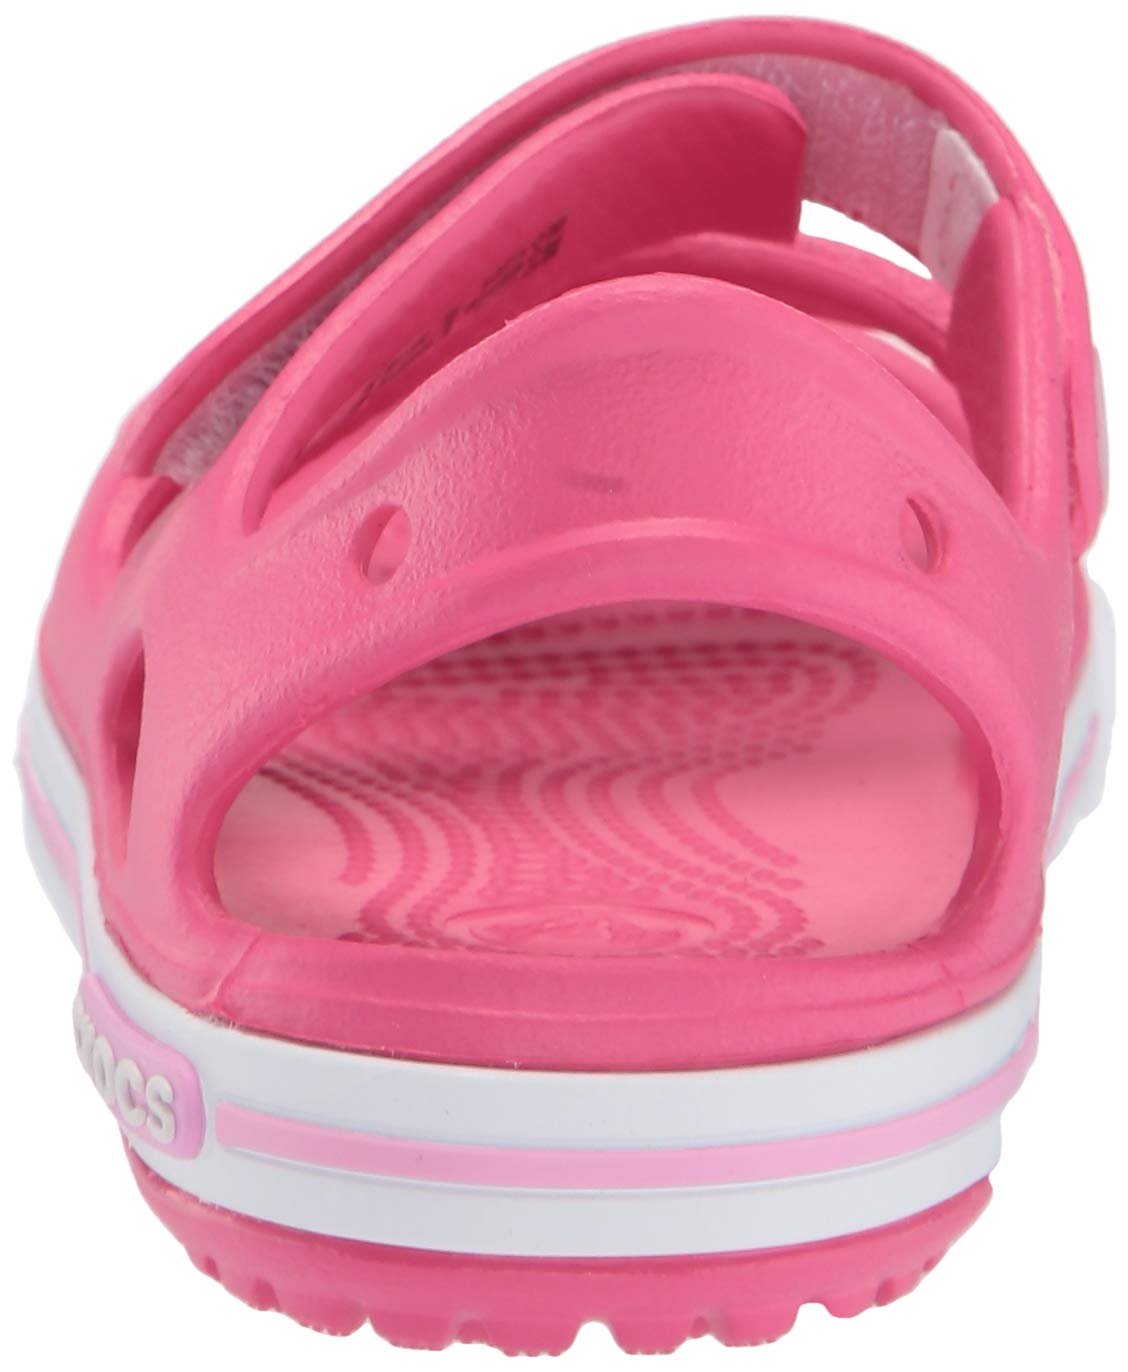 Crocs Kid's Boys and Girls Crocband II Sandal | Pre School, Paradise Pink/Carnation 6 M US Toddler by Crocs (Image #2)